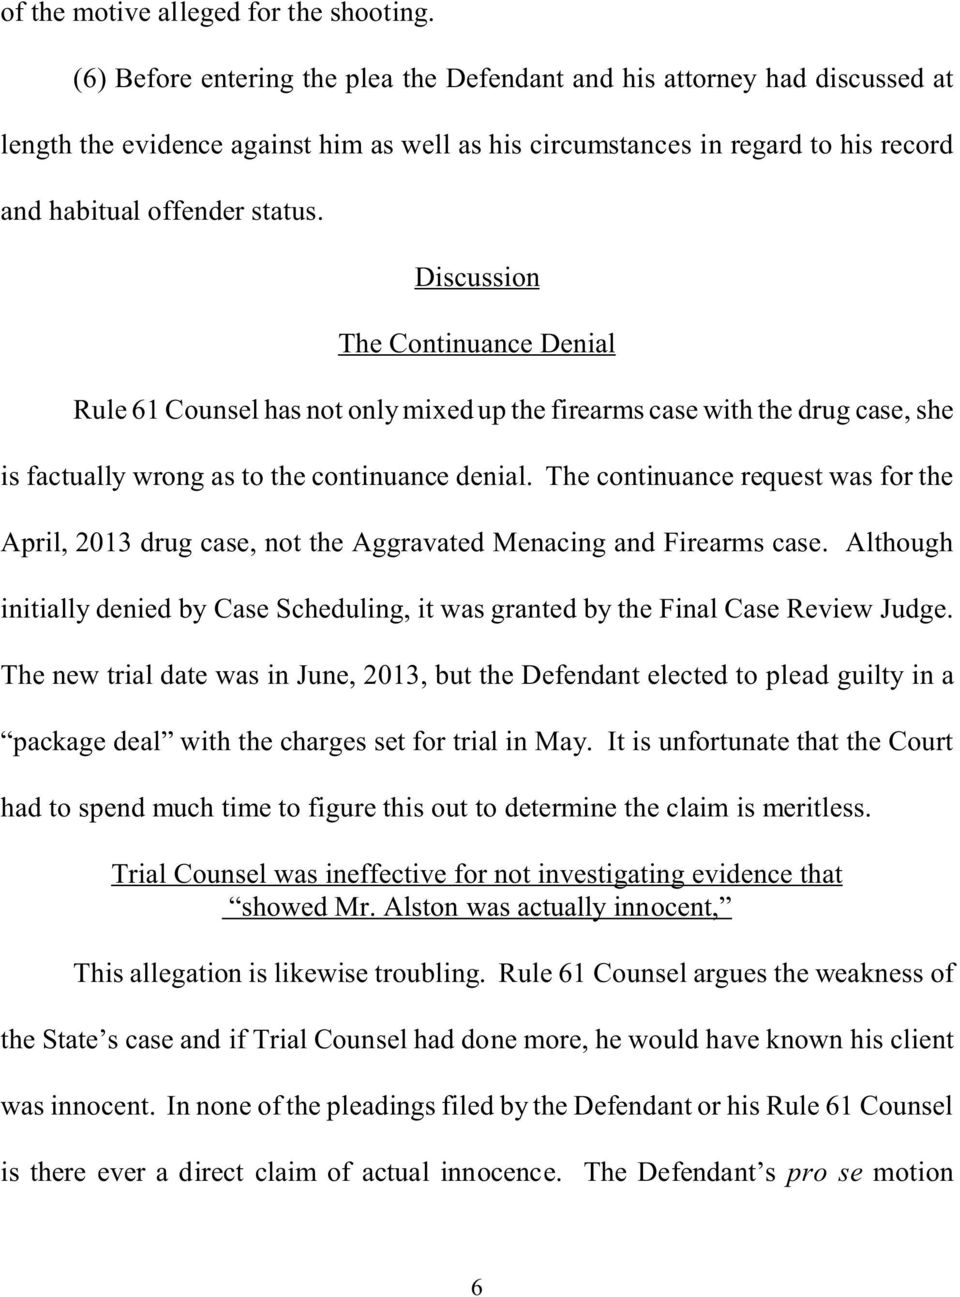 Discussion The Continuance Denial Rule 61 Counsel has not only mixed up the firearms case with the drug case, she is factually wrong as to the continuance denial.